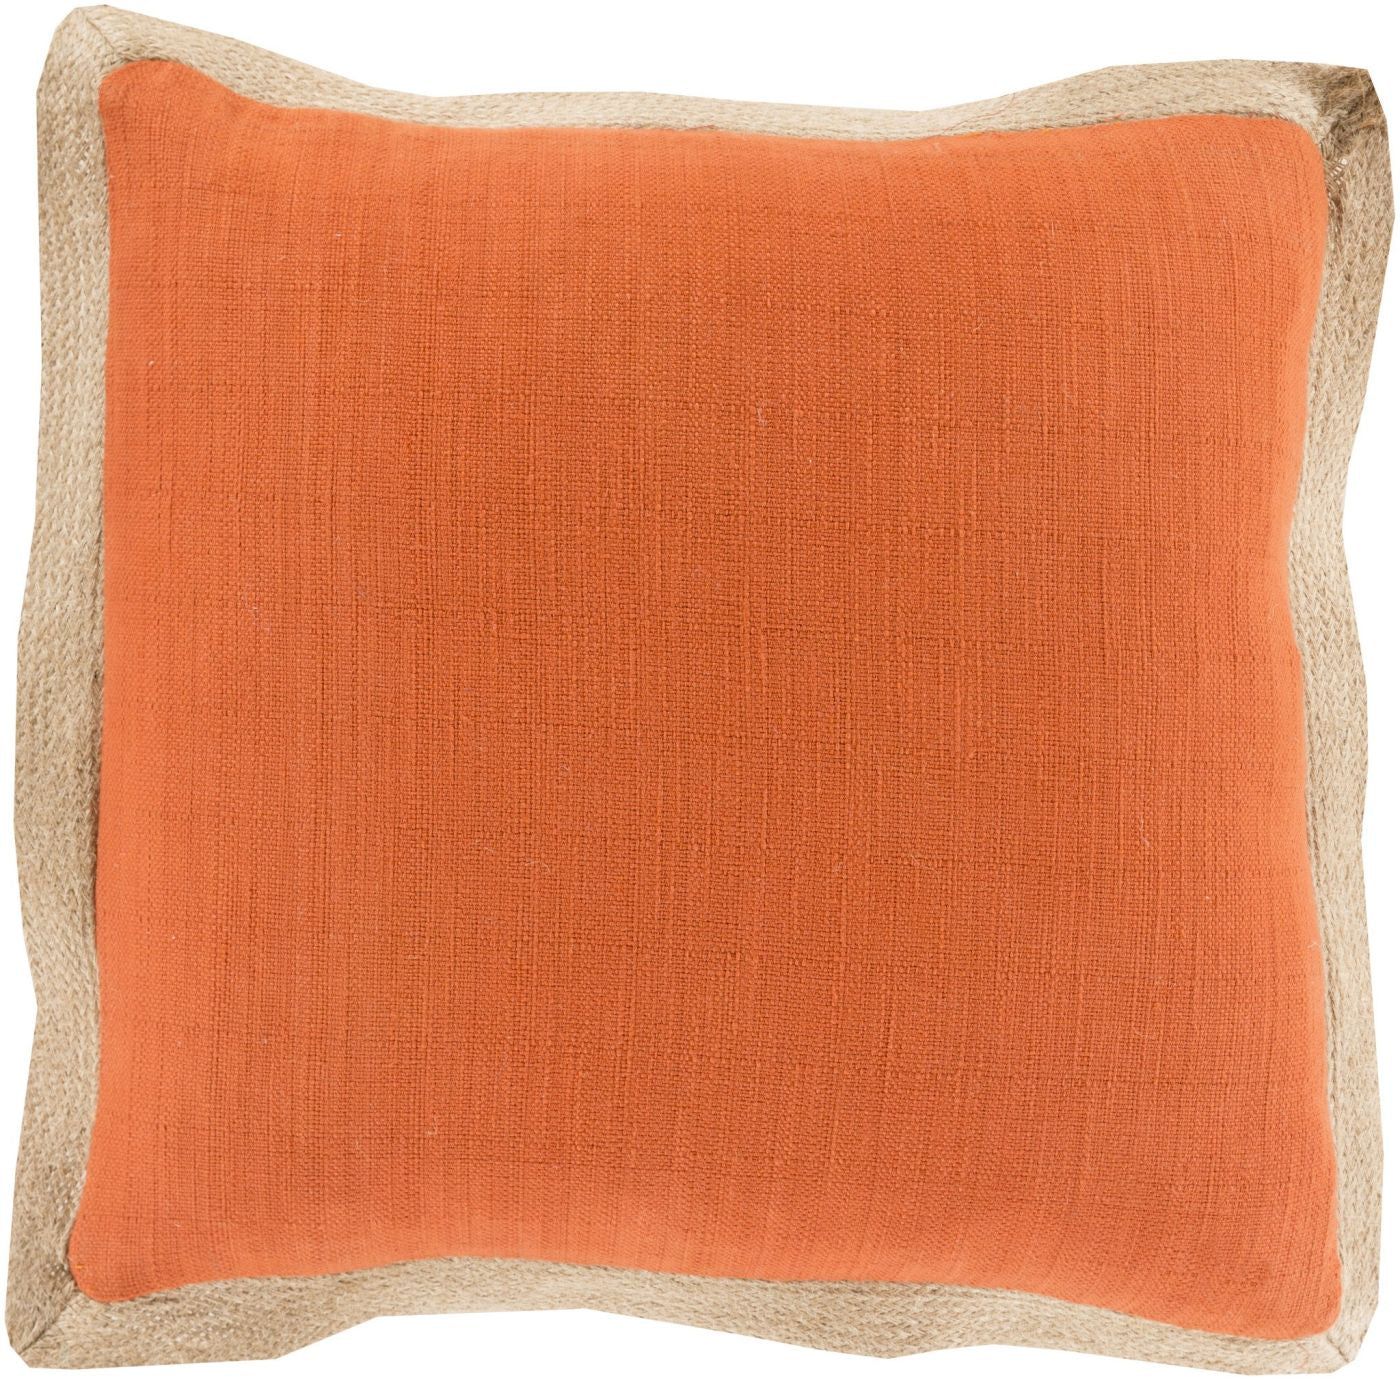 Brown Orange Throw Pillow : Surya Jute Flange Throw Pillow Orange, Brown JF004-2222D. Only USD61.80 at Contemporary Furniture ...